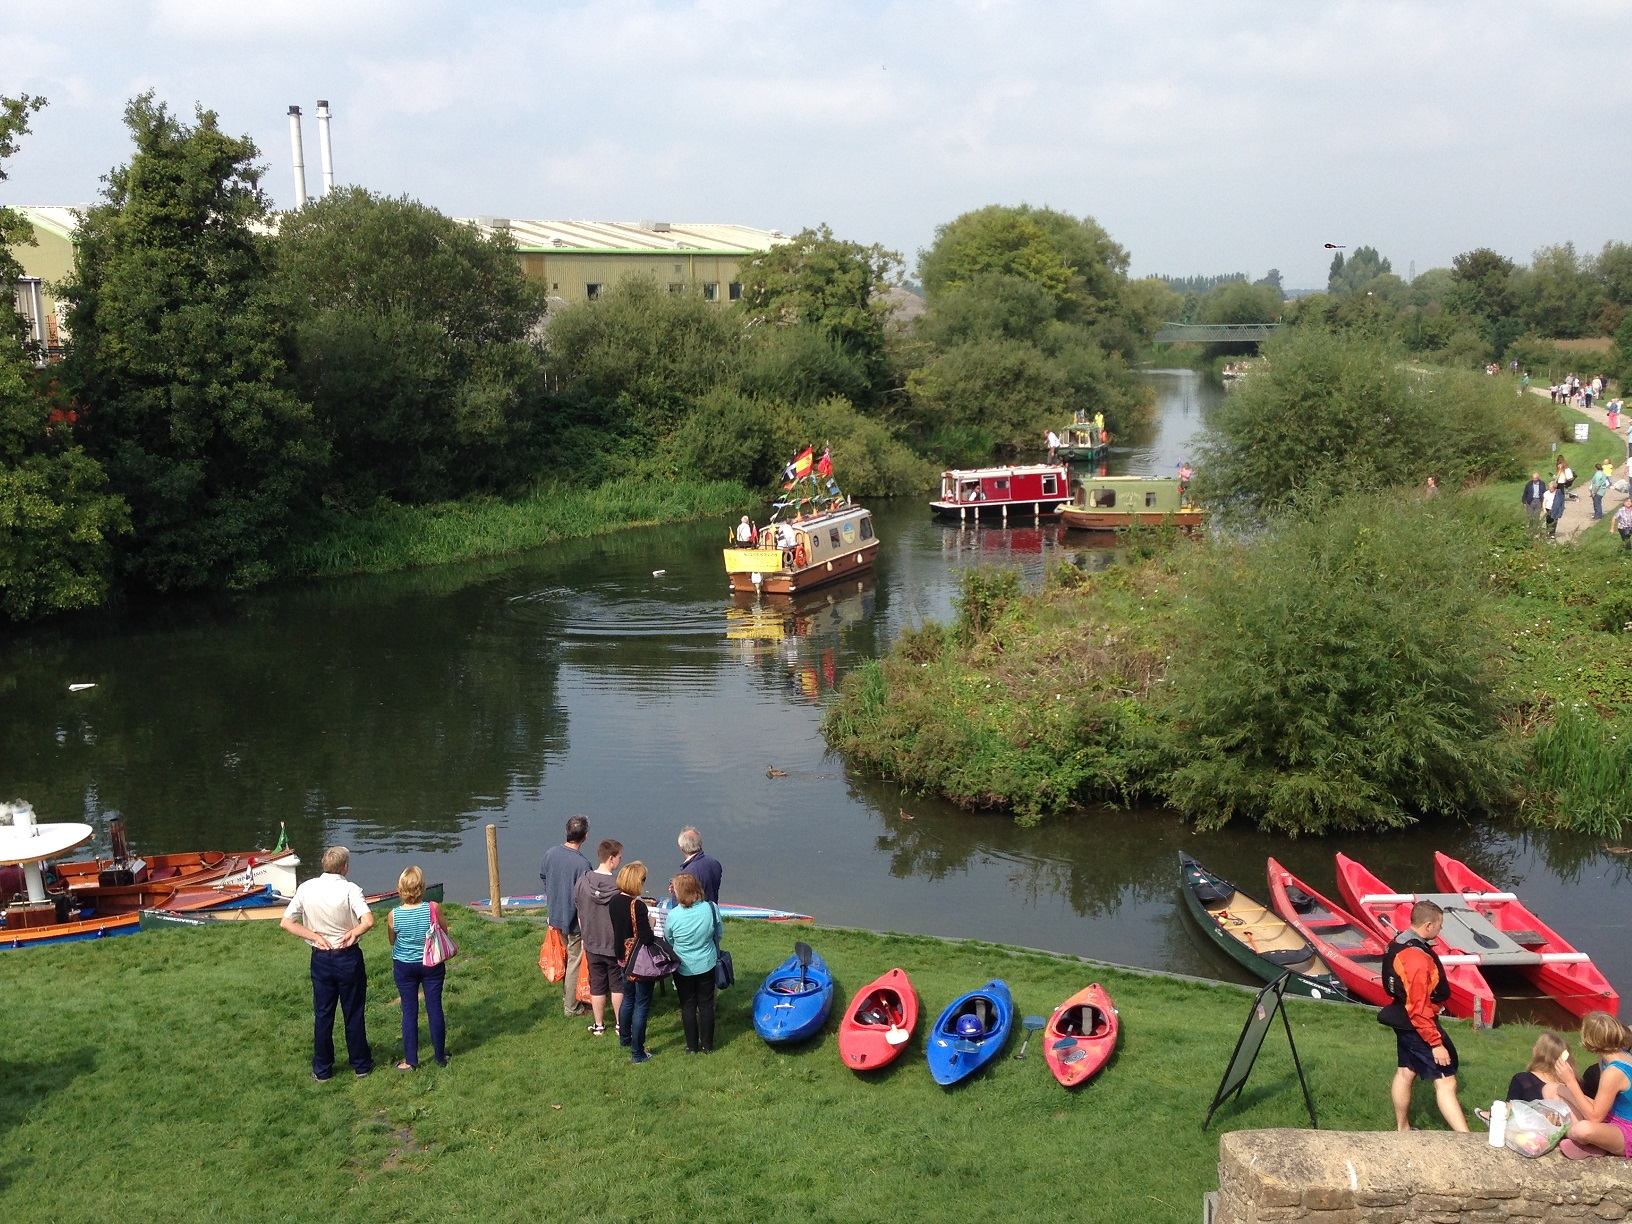 Boats on the River Avon for the Melksham River and Food Festival 2014